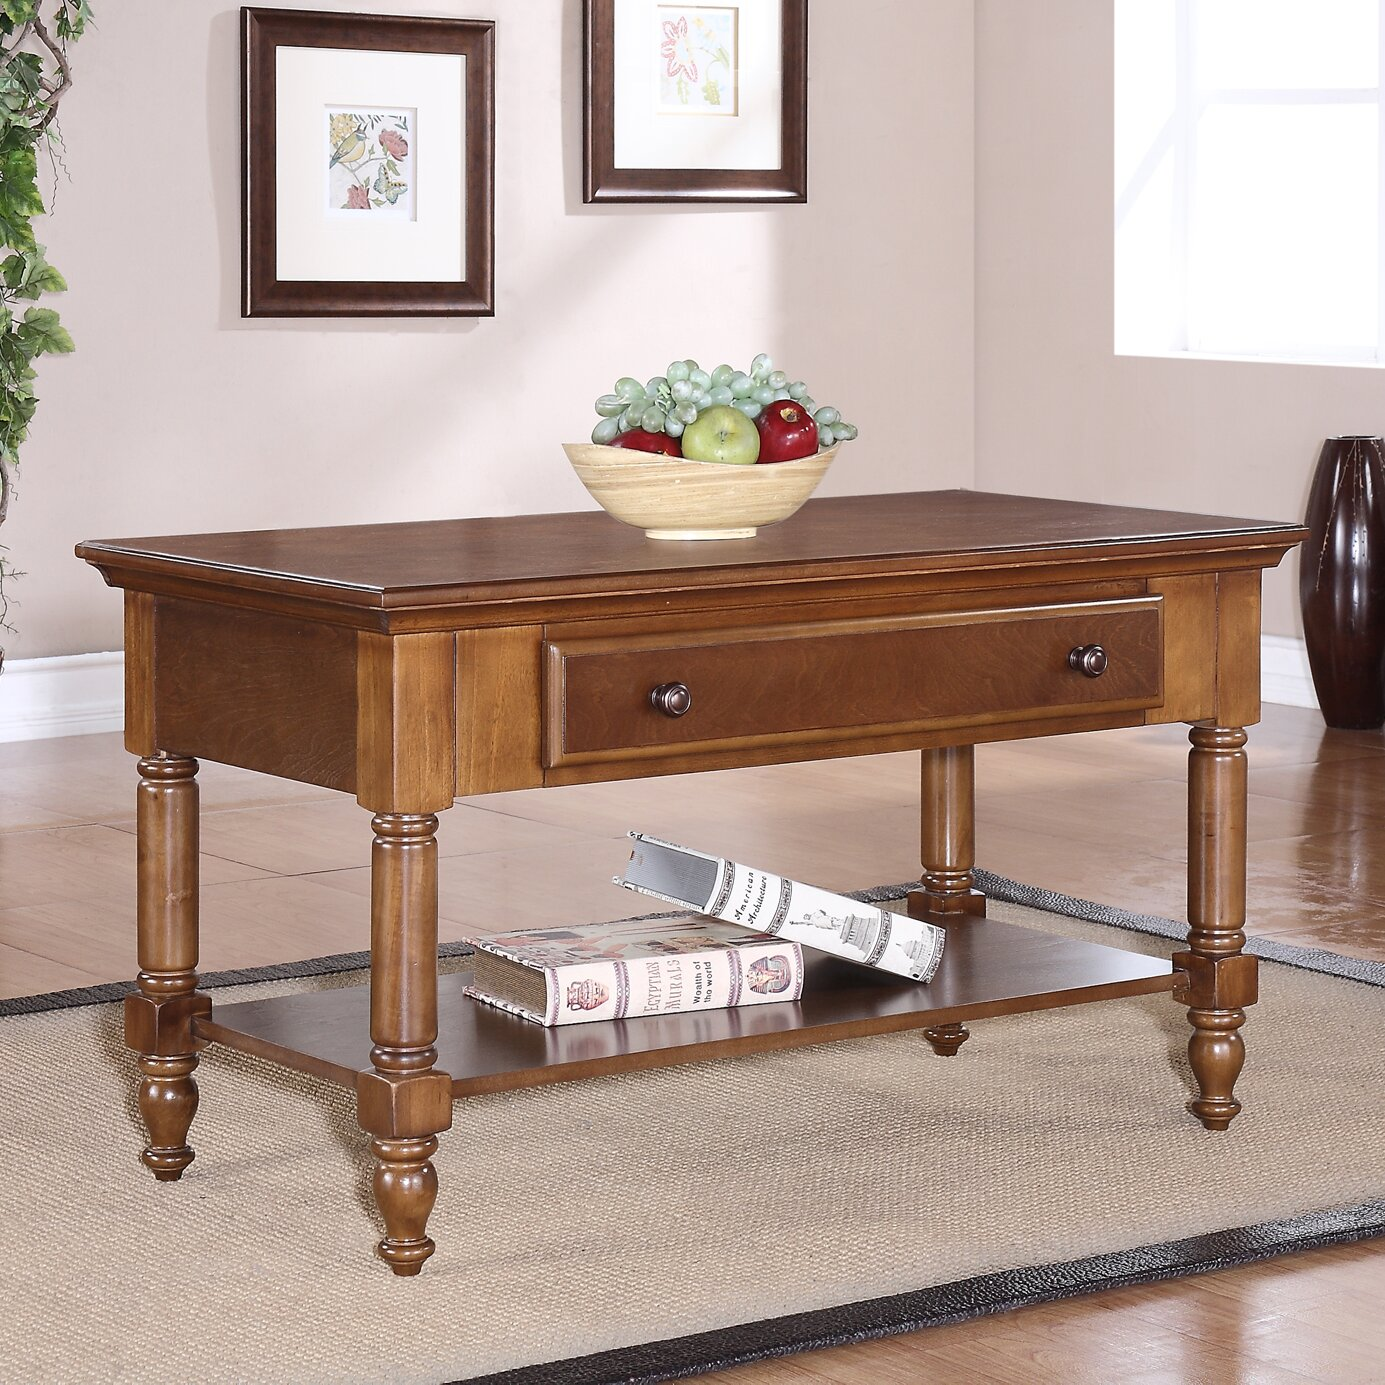 home gt accent furniture gt cocktail or coffee table gt